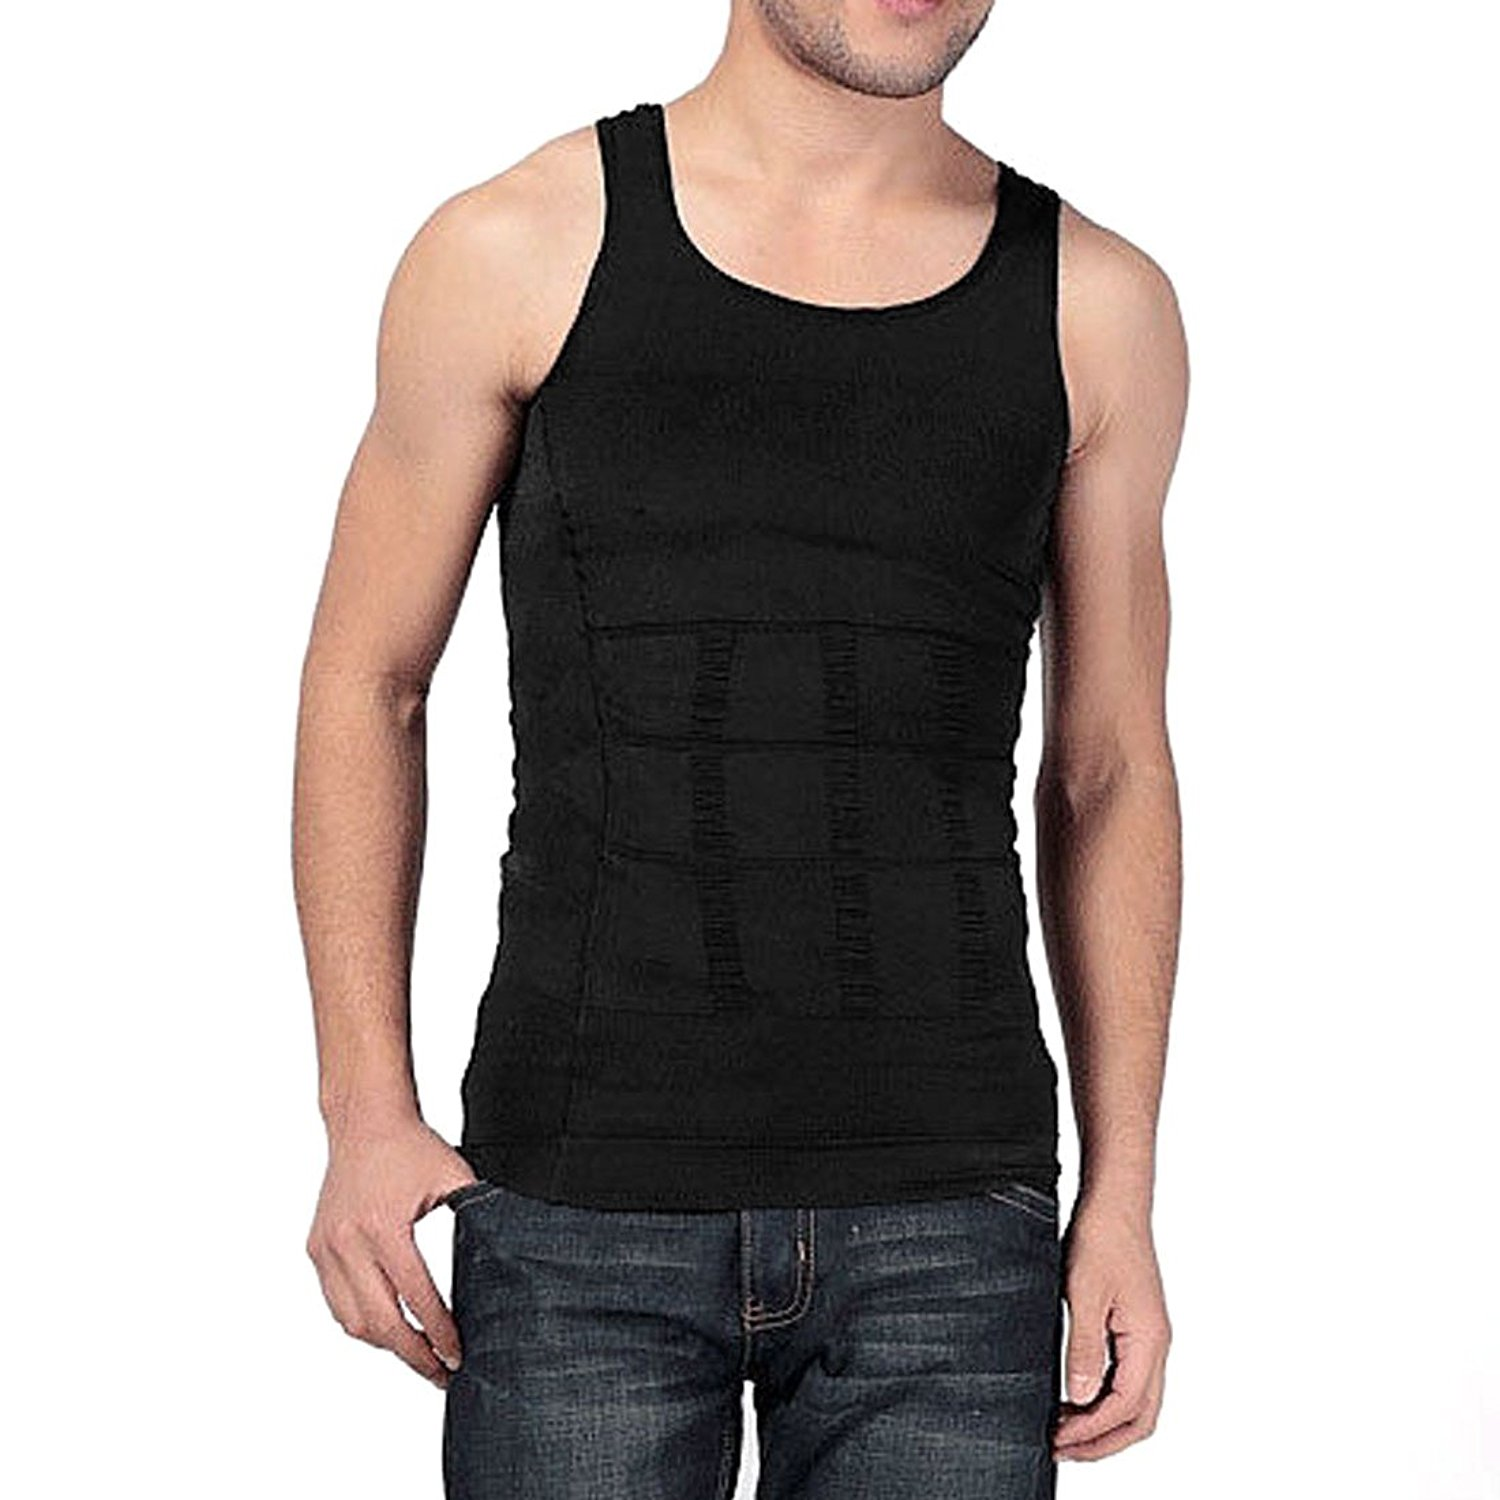 b9c2a5ab19e Get Quotations · Mens Instantly Slimming Compression Tshirt